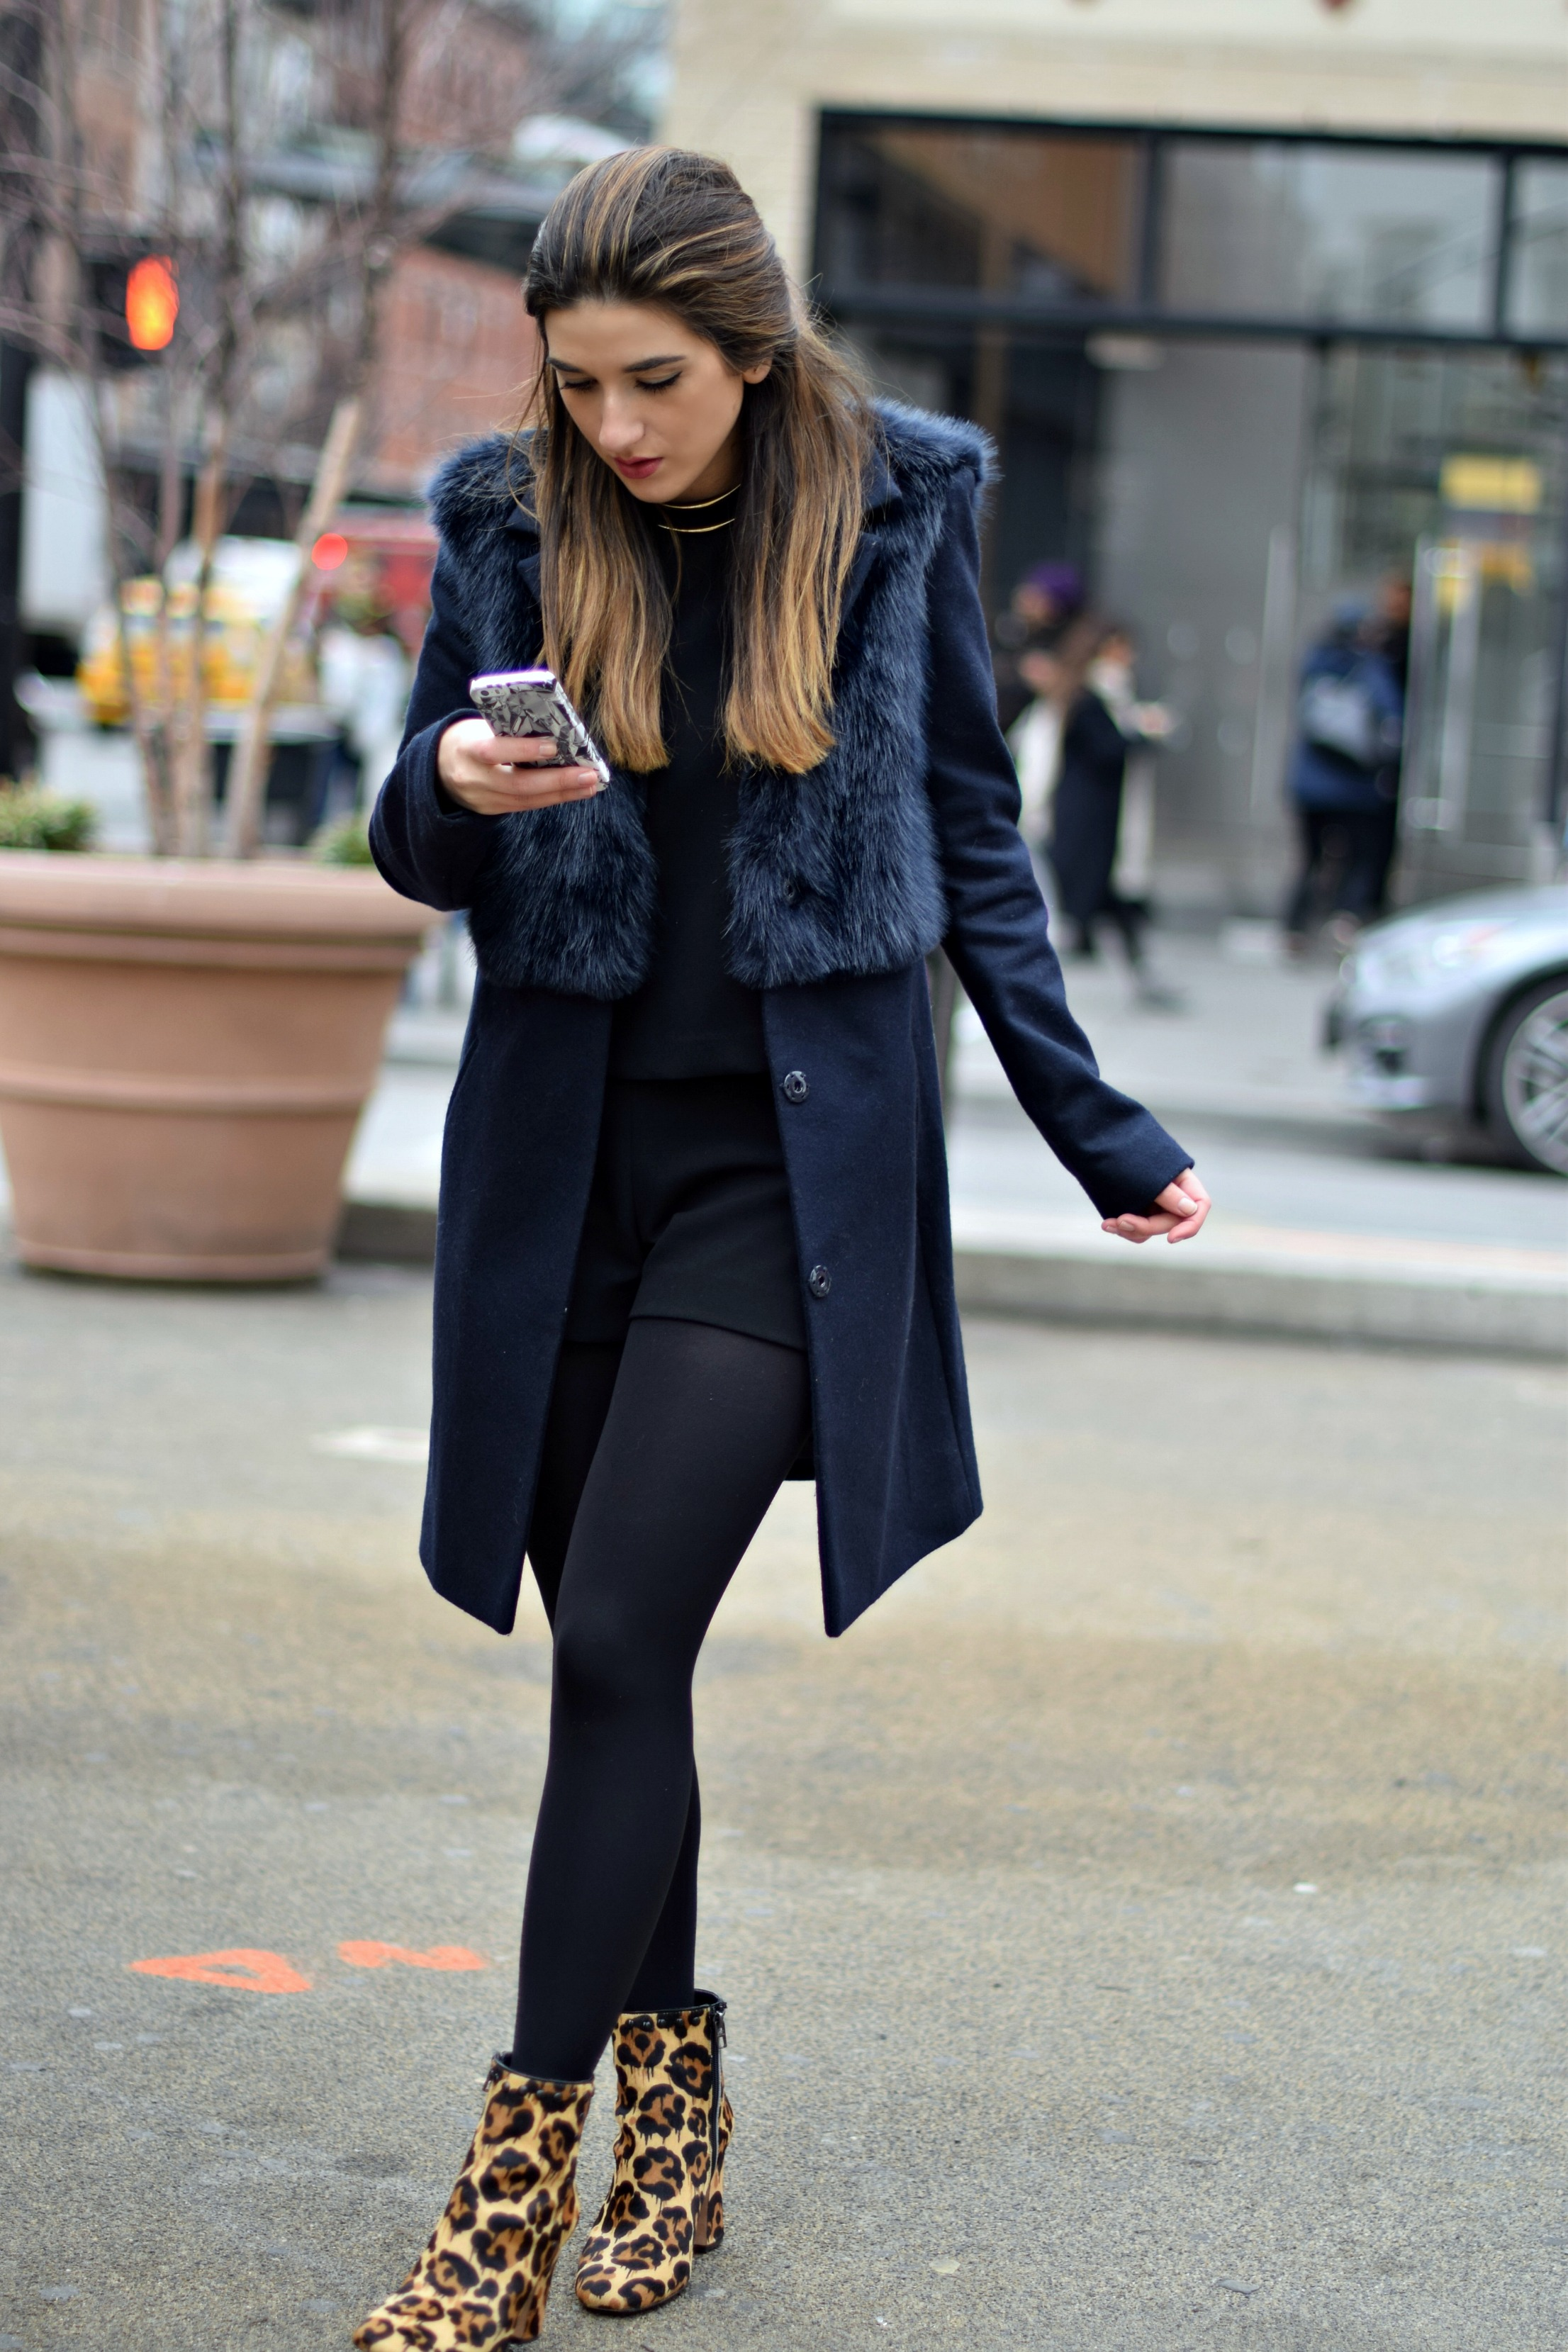 Navy Coat Coach Leopard Booties Louboutins & Love Fashion Blog Esther Santer NYC Street Style Blogger Outfit OOTD Fur Topshop Shopping Girl Women Swag Photoshoot Model Beautiful Winter Look NYFW Tights Ivanka Trump Soho Tote Ombre Hair City Lifestyle.jpg